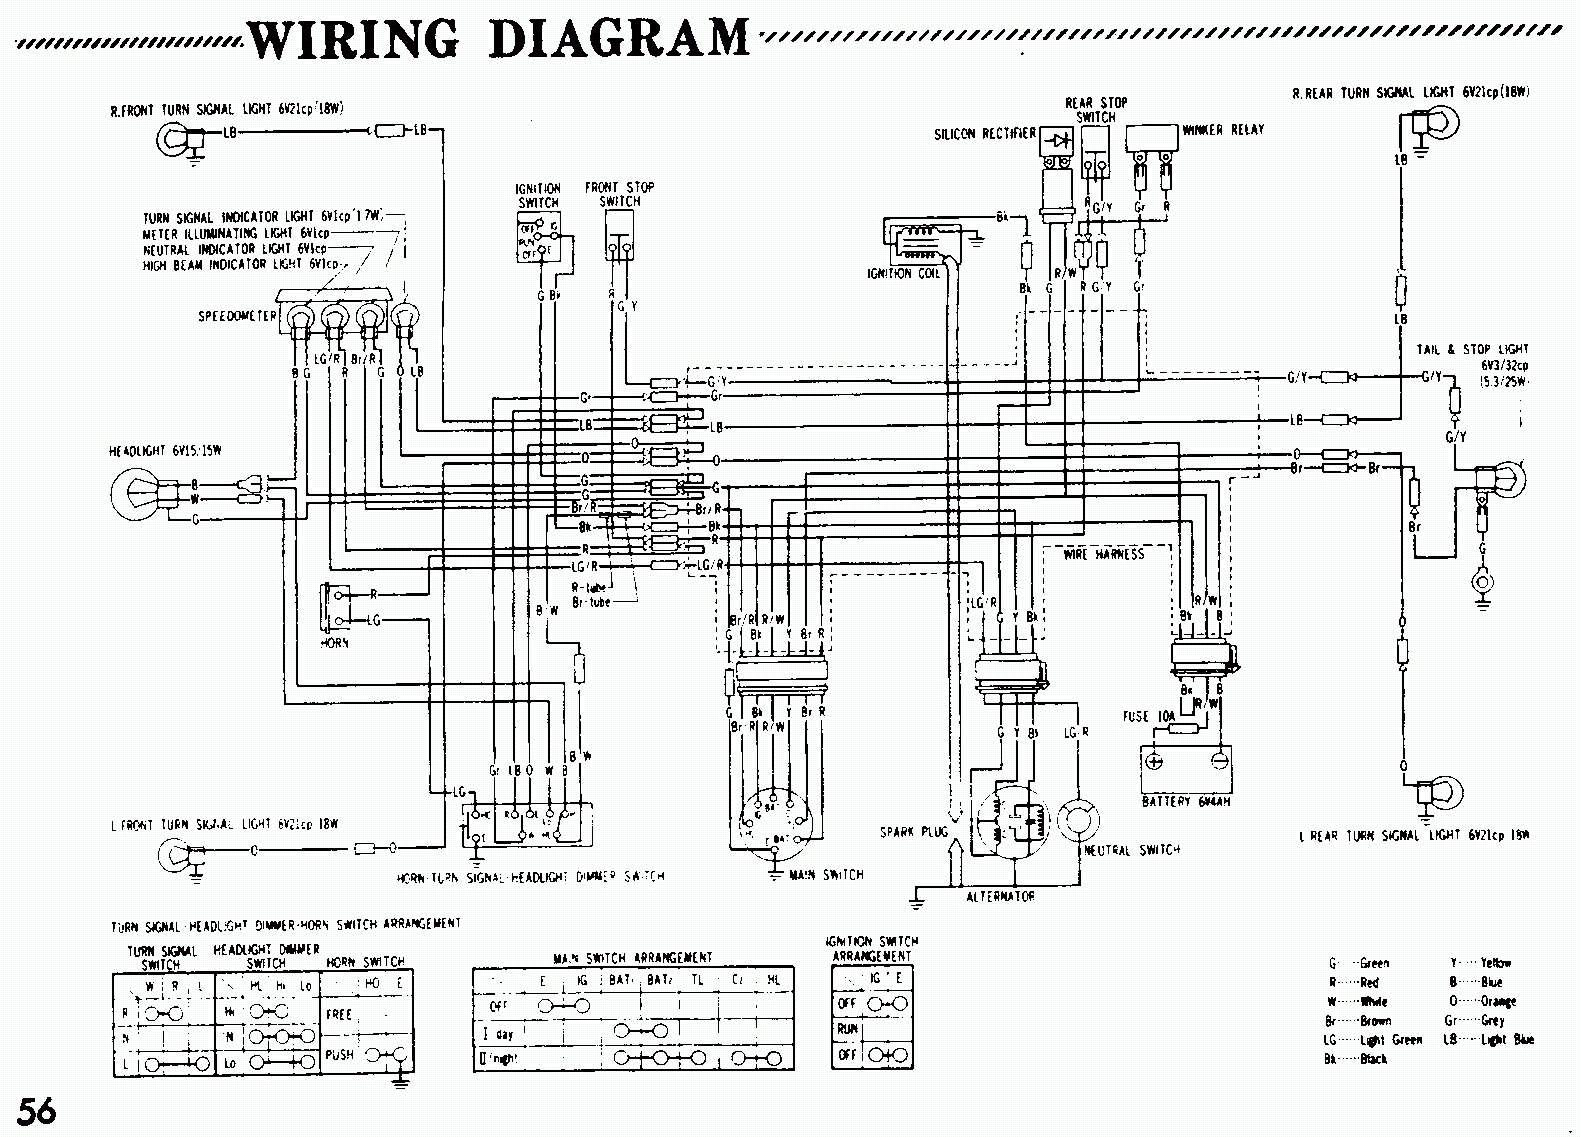 honda ct70 1976 wiring diagram 1980 honda ct70 wiring diagram 1980 honda cb750 wiring diagram 1981 honda ct70 wiring diagram at readyjetset.co